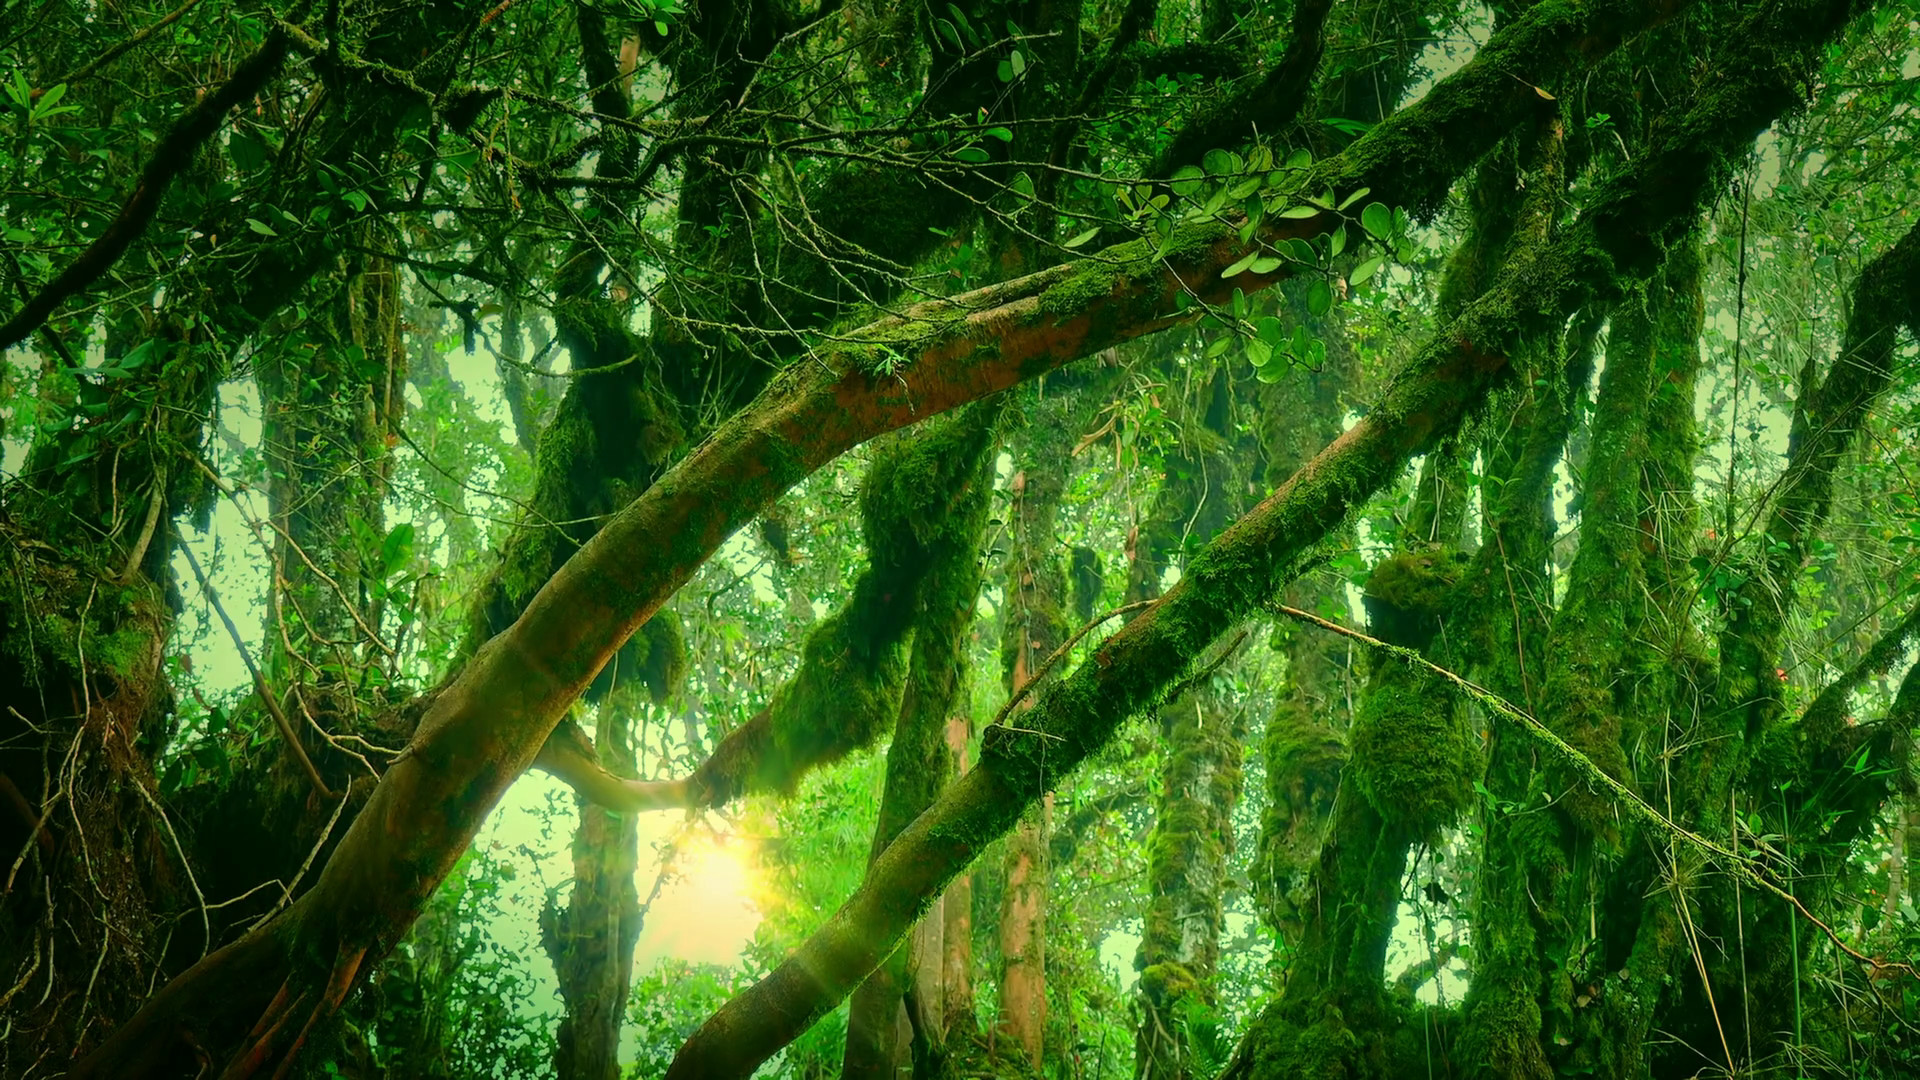 Fall Desktop Wallpaper Widescreen Free Enchanted Forest Background 60 Images